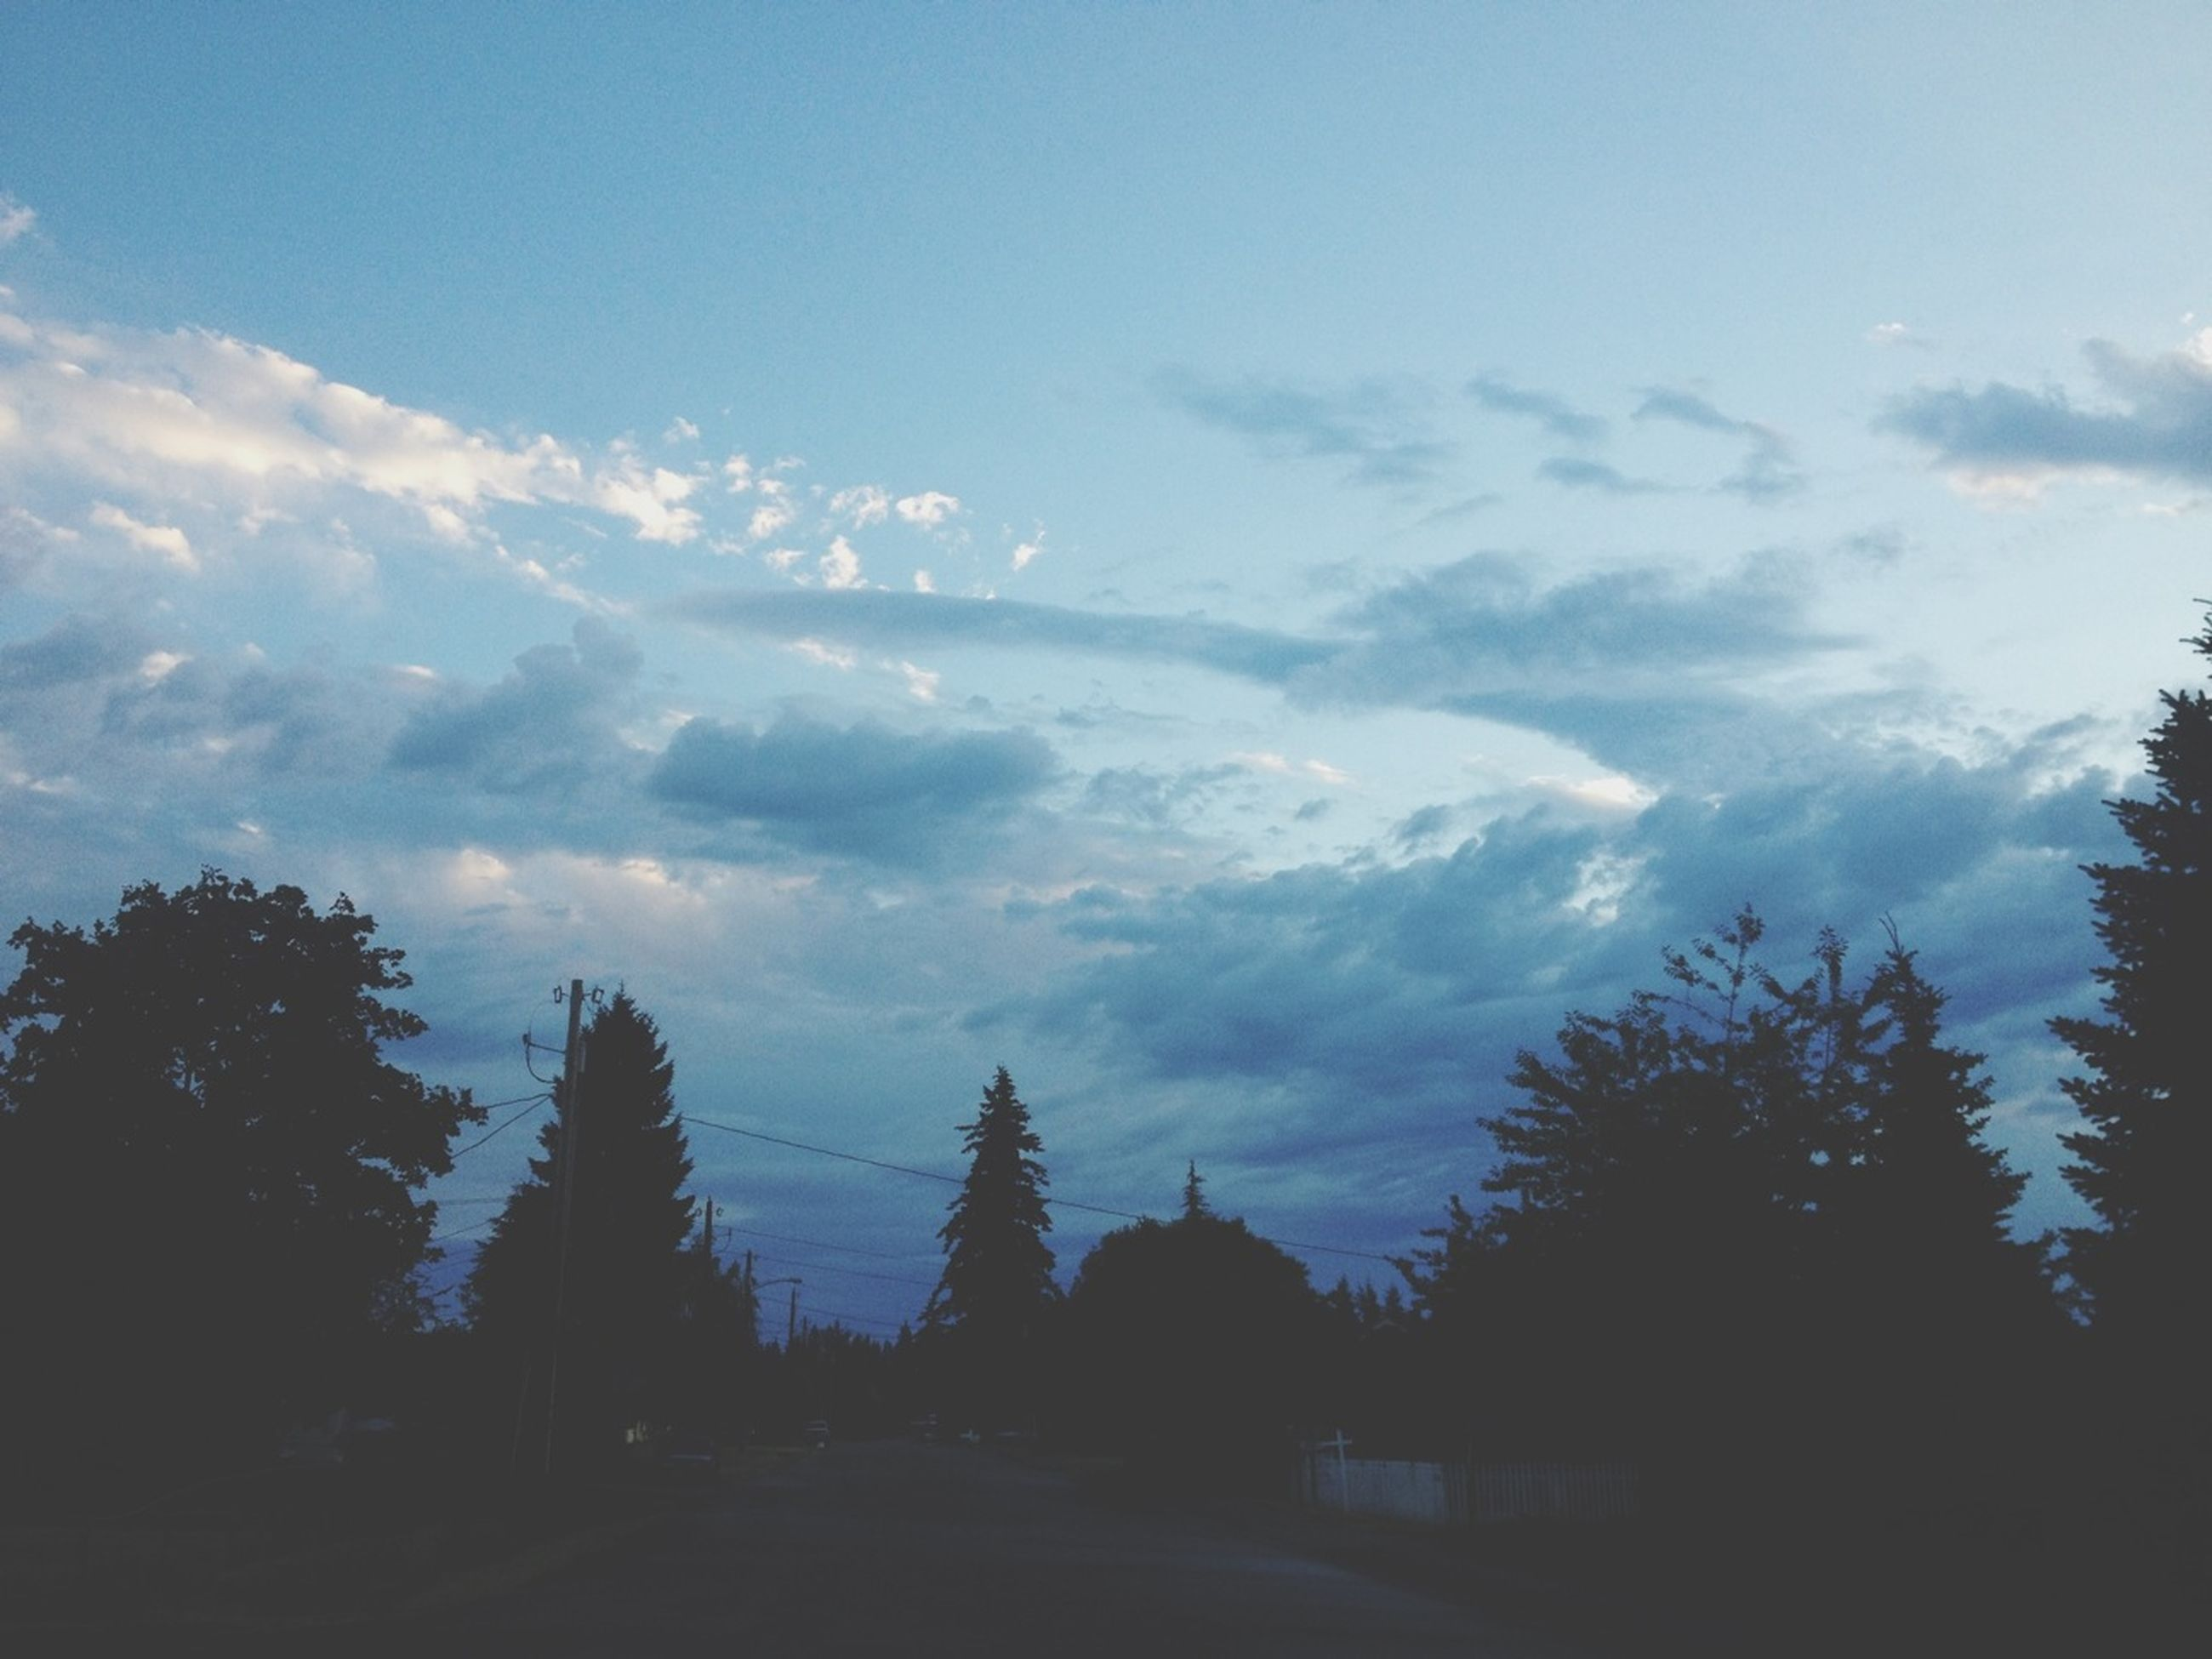 tree, sky, silhouette, tranquility, tranquil scene, cloud - sky, scenics, beauty in nature, nature, cloud, landscape, cloudy, growth, outdoors, idyllic, sunset, no people, non-urban scene, sunlight, low angle view